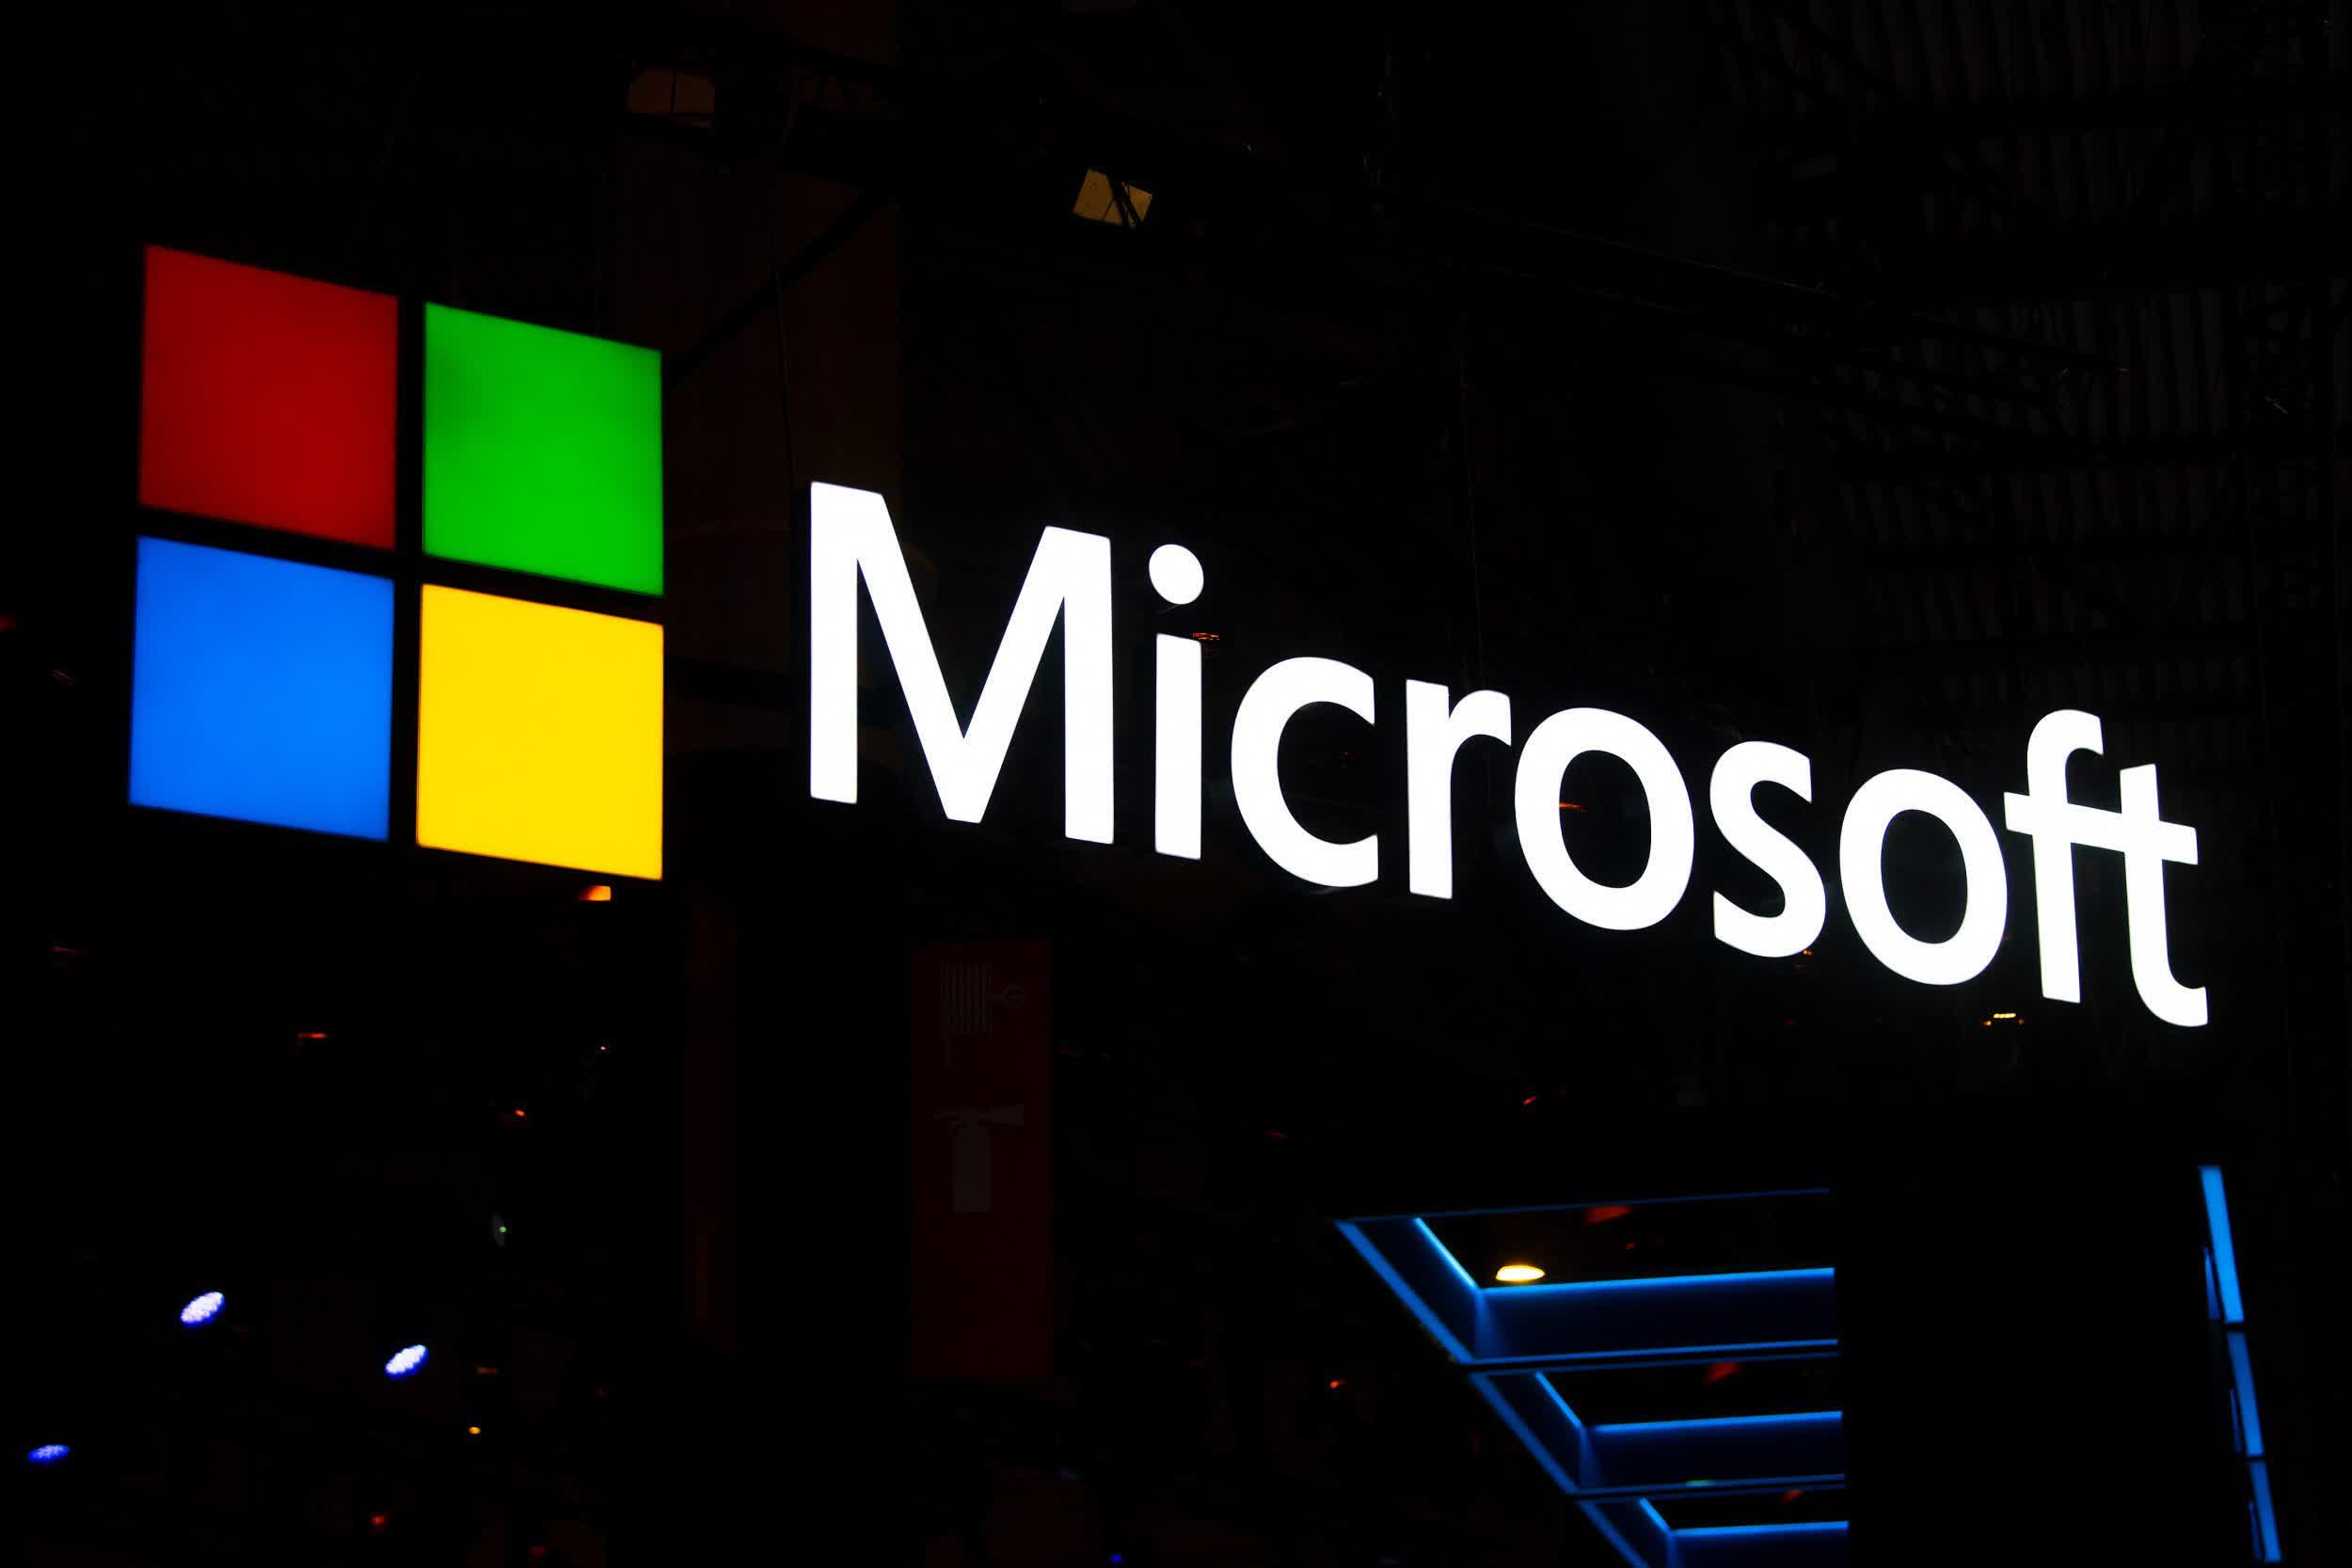 Microsoft releases security updates for critical Windows exploits